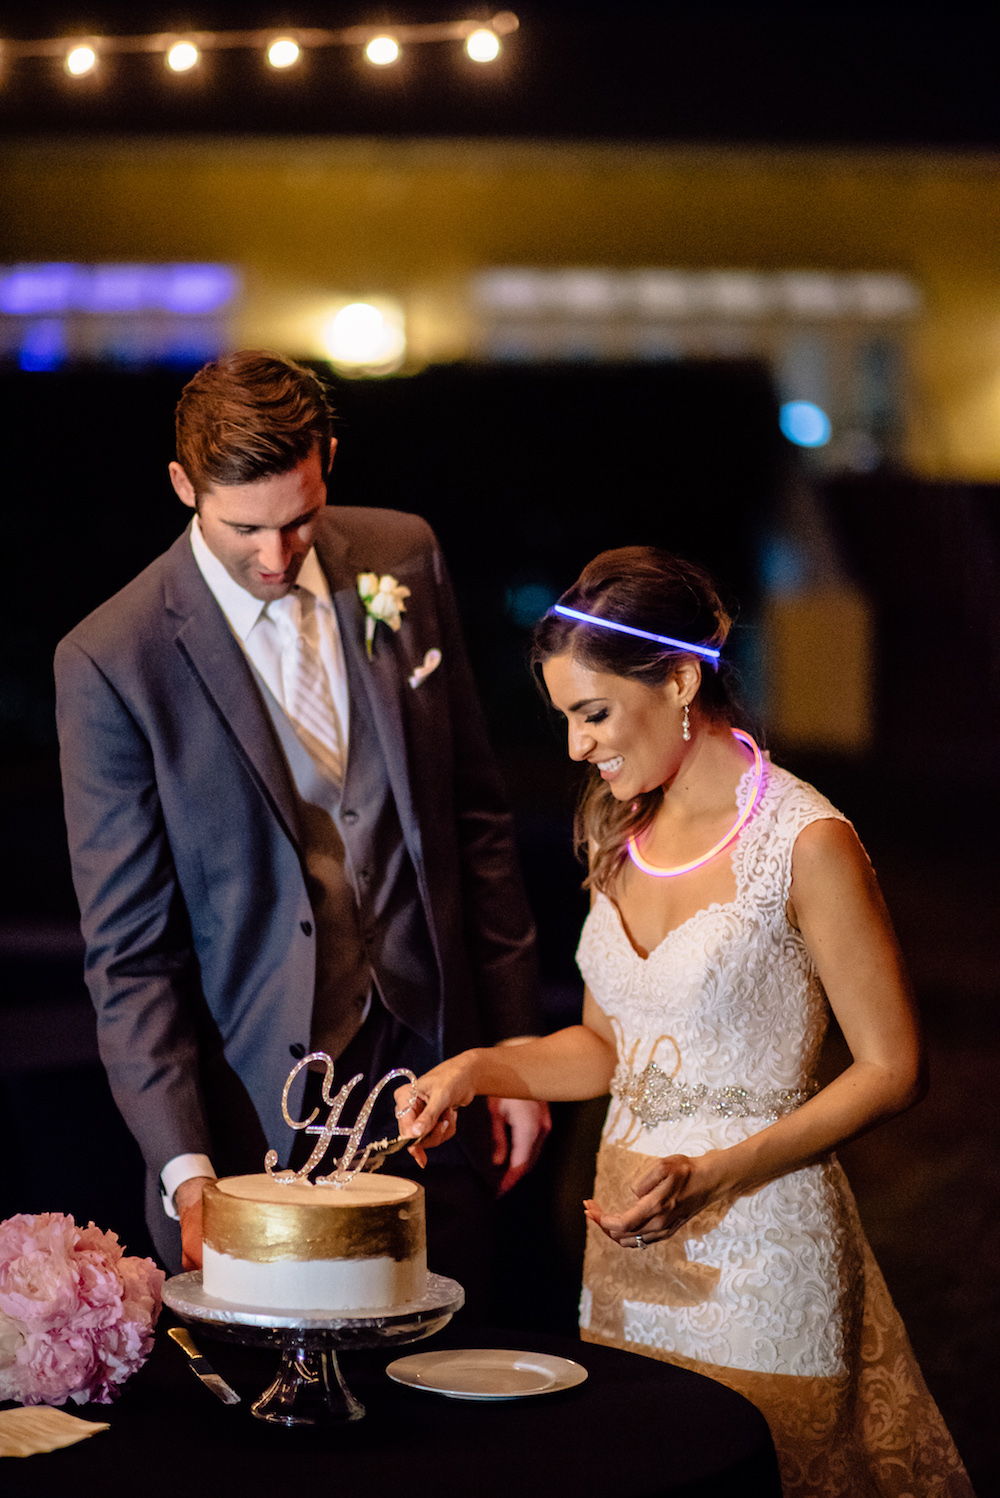 Outdoor Wedding Reception Hyatt Regency Coconut Point Matt Steeves Photography Bonita Springs.jpg